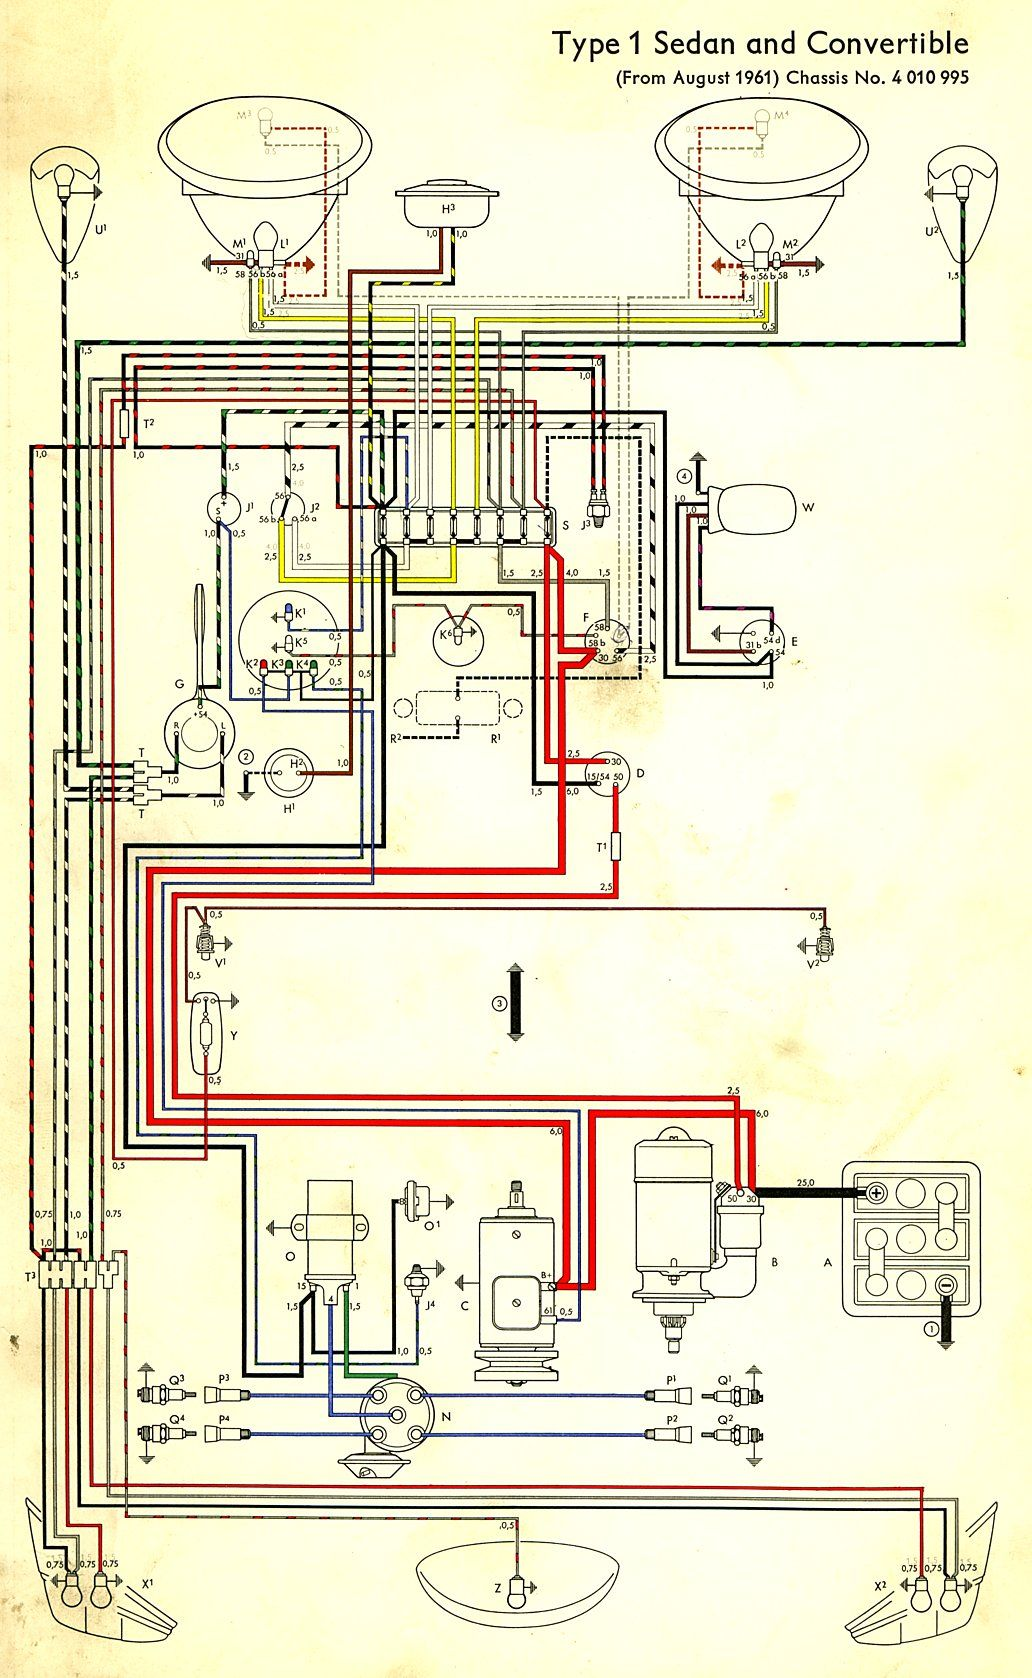 voltswagon bug diagram wiring diagram usedwiring diagram in color 1964 vw bug beetle convertible [ 1032 x 1678 Pixel ]